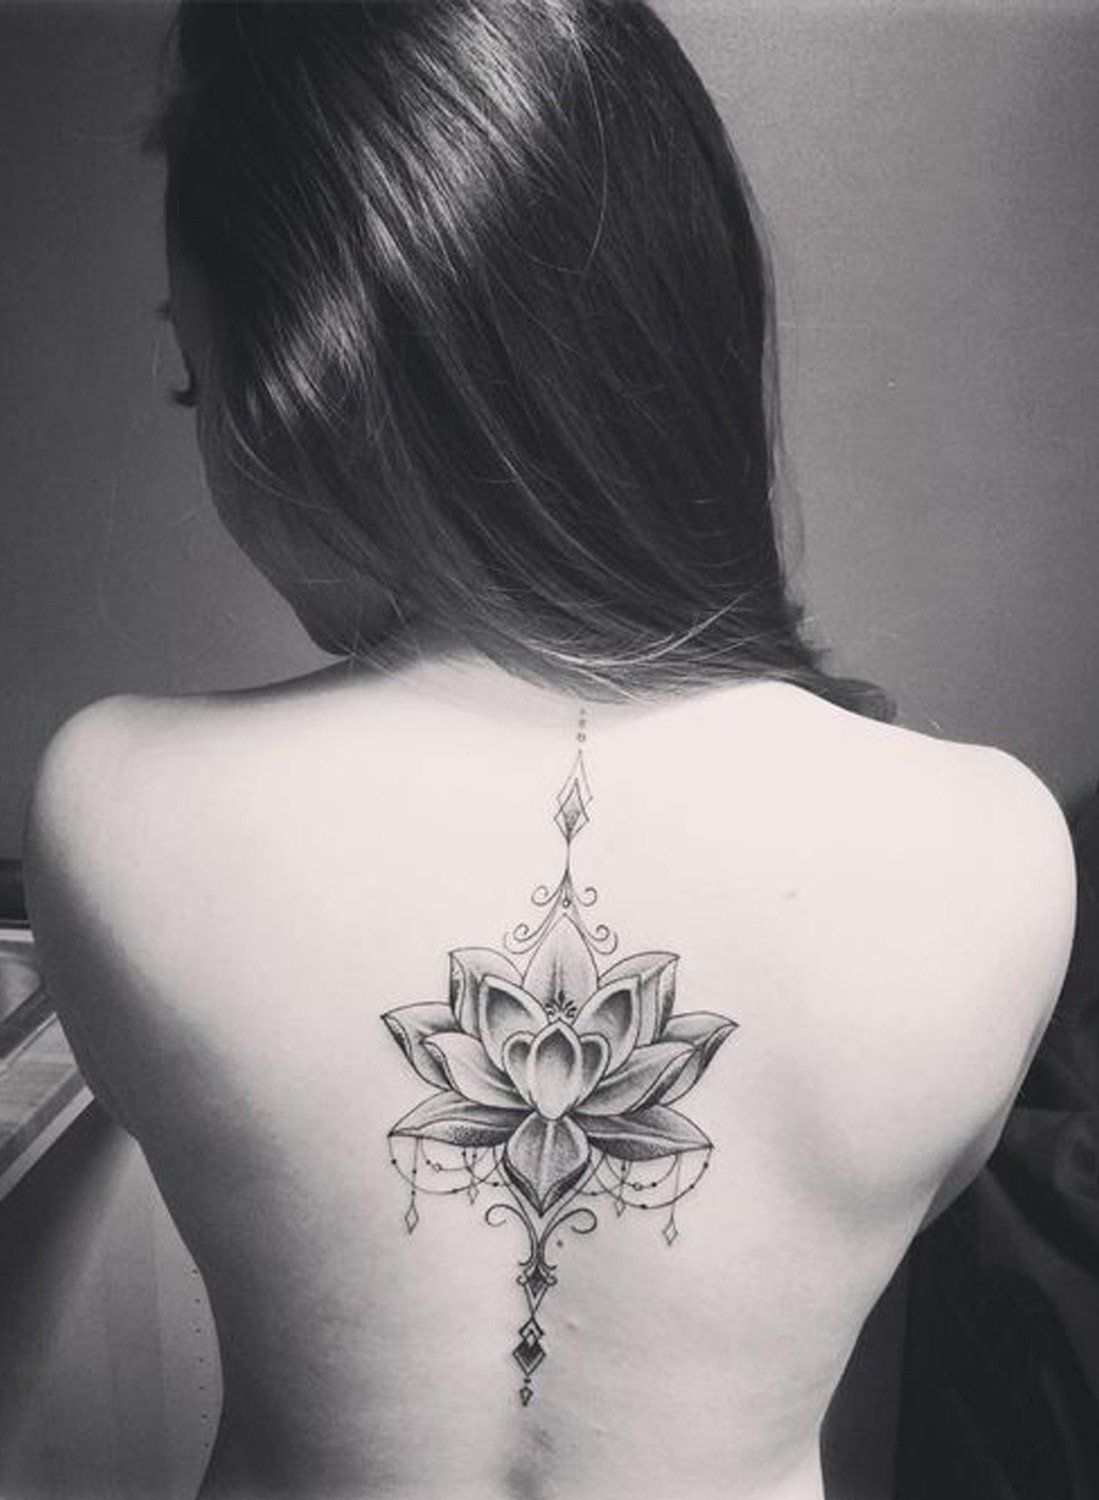 100 most popular lotus tattoos ideas for women pretty pinterest mandala lotus flower back spine tattoo placement ideas for women at mybodiart izmirmasajfo